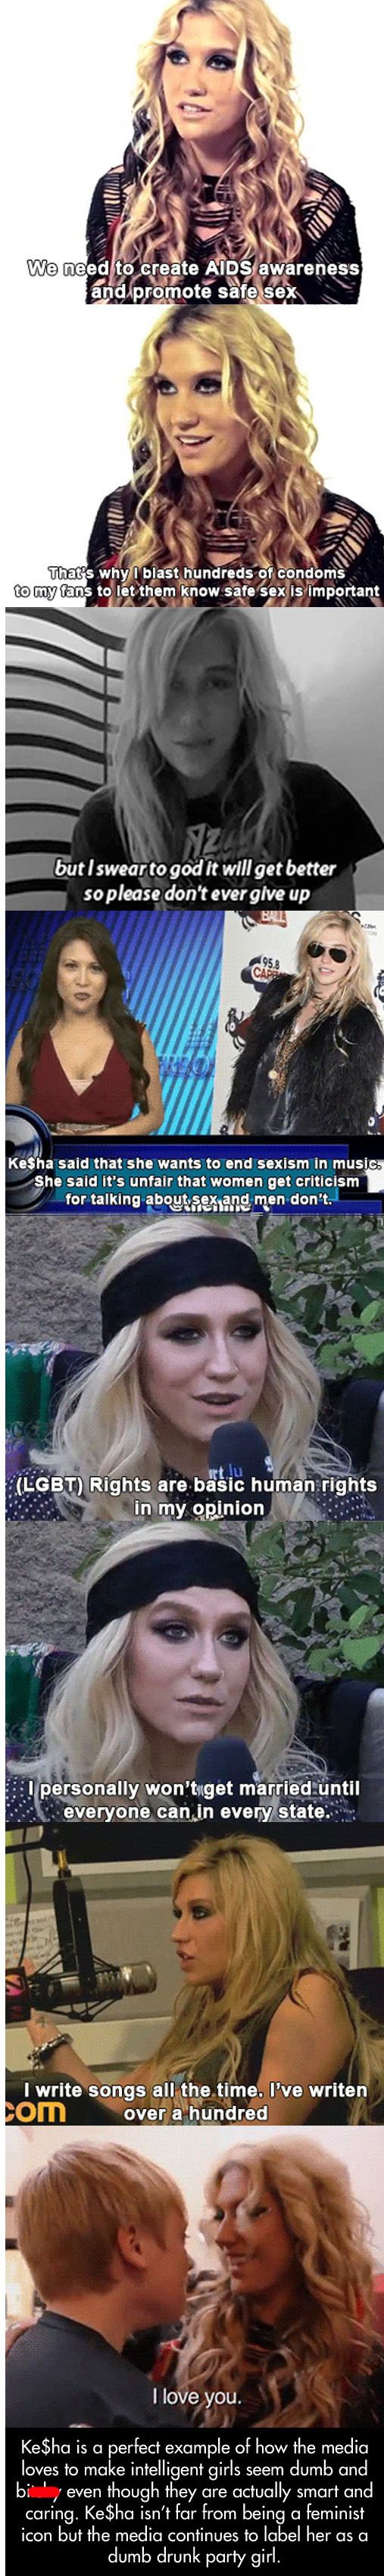 She's not just a party girl, there's so much more about Kesha - Sassified. I never knew this about Kesha!